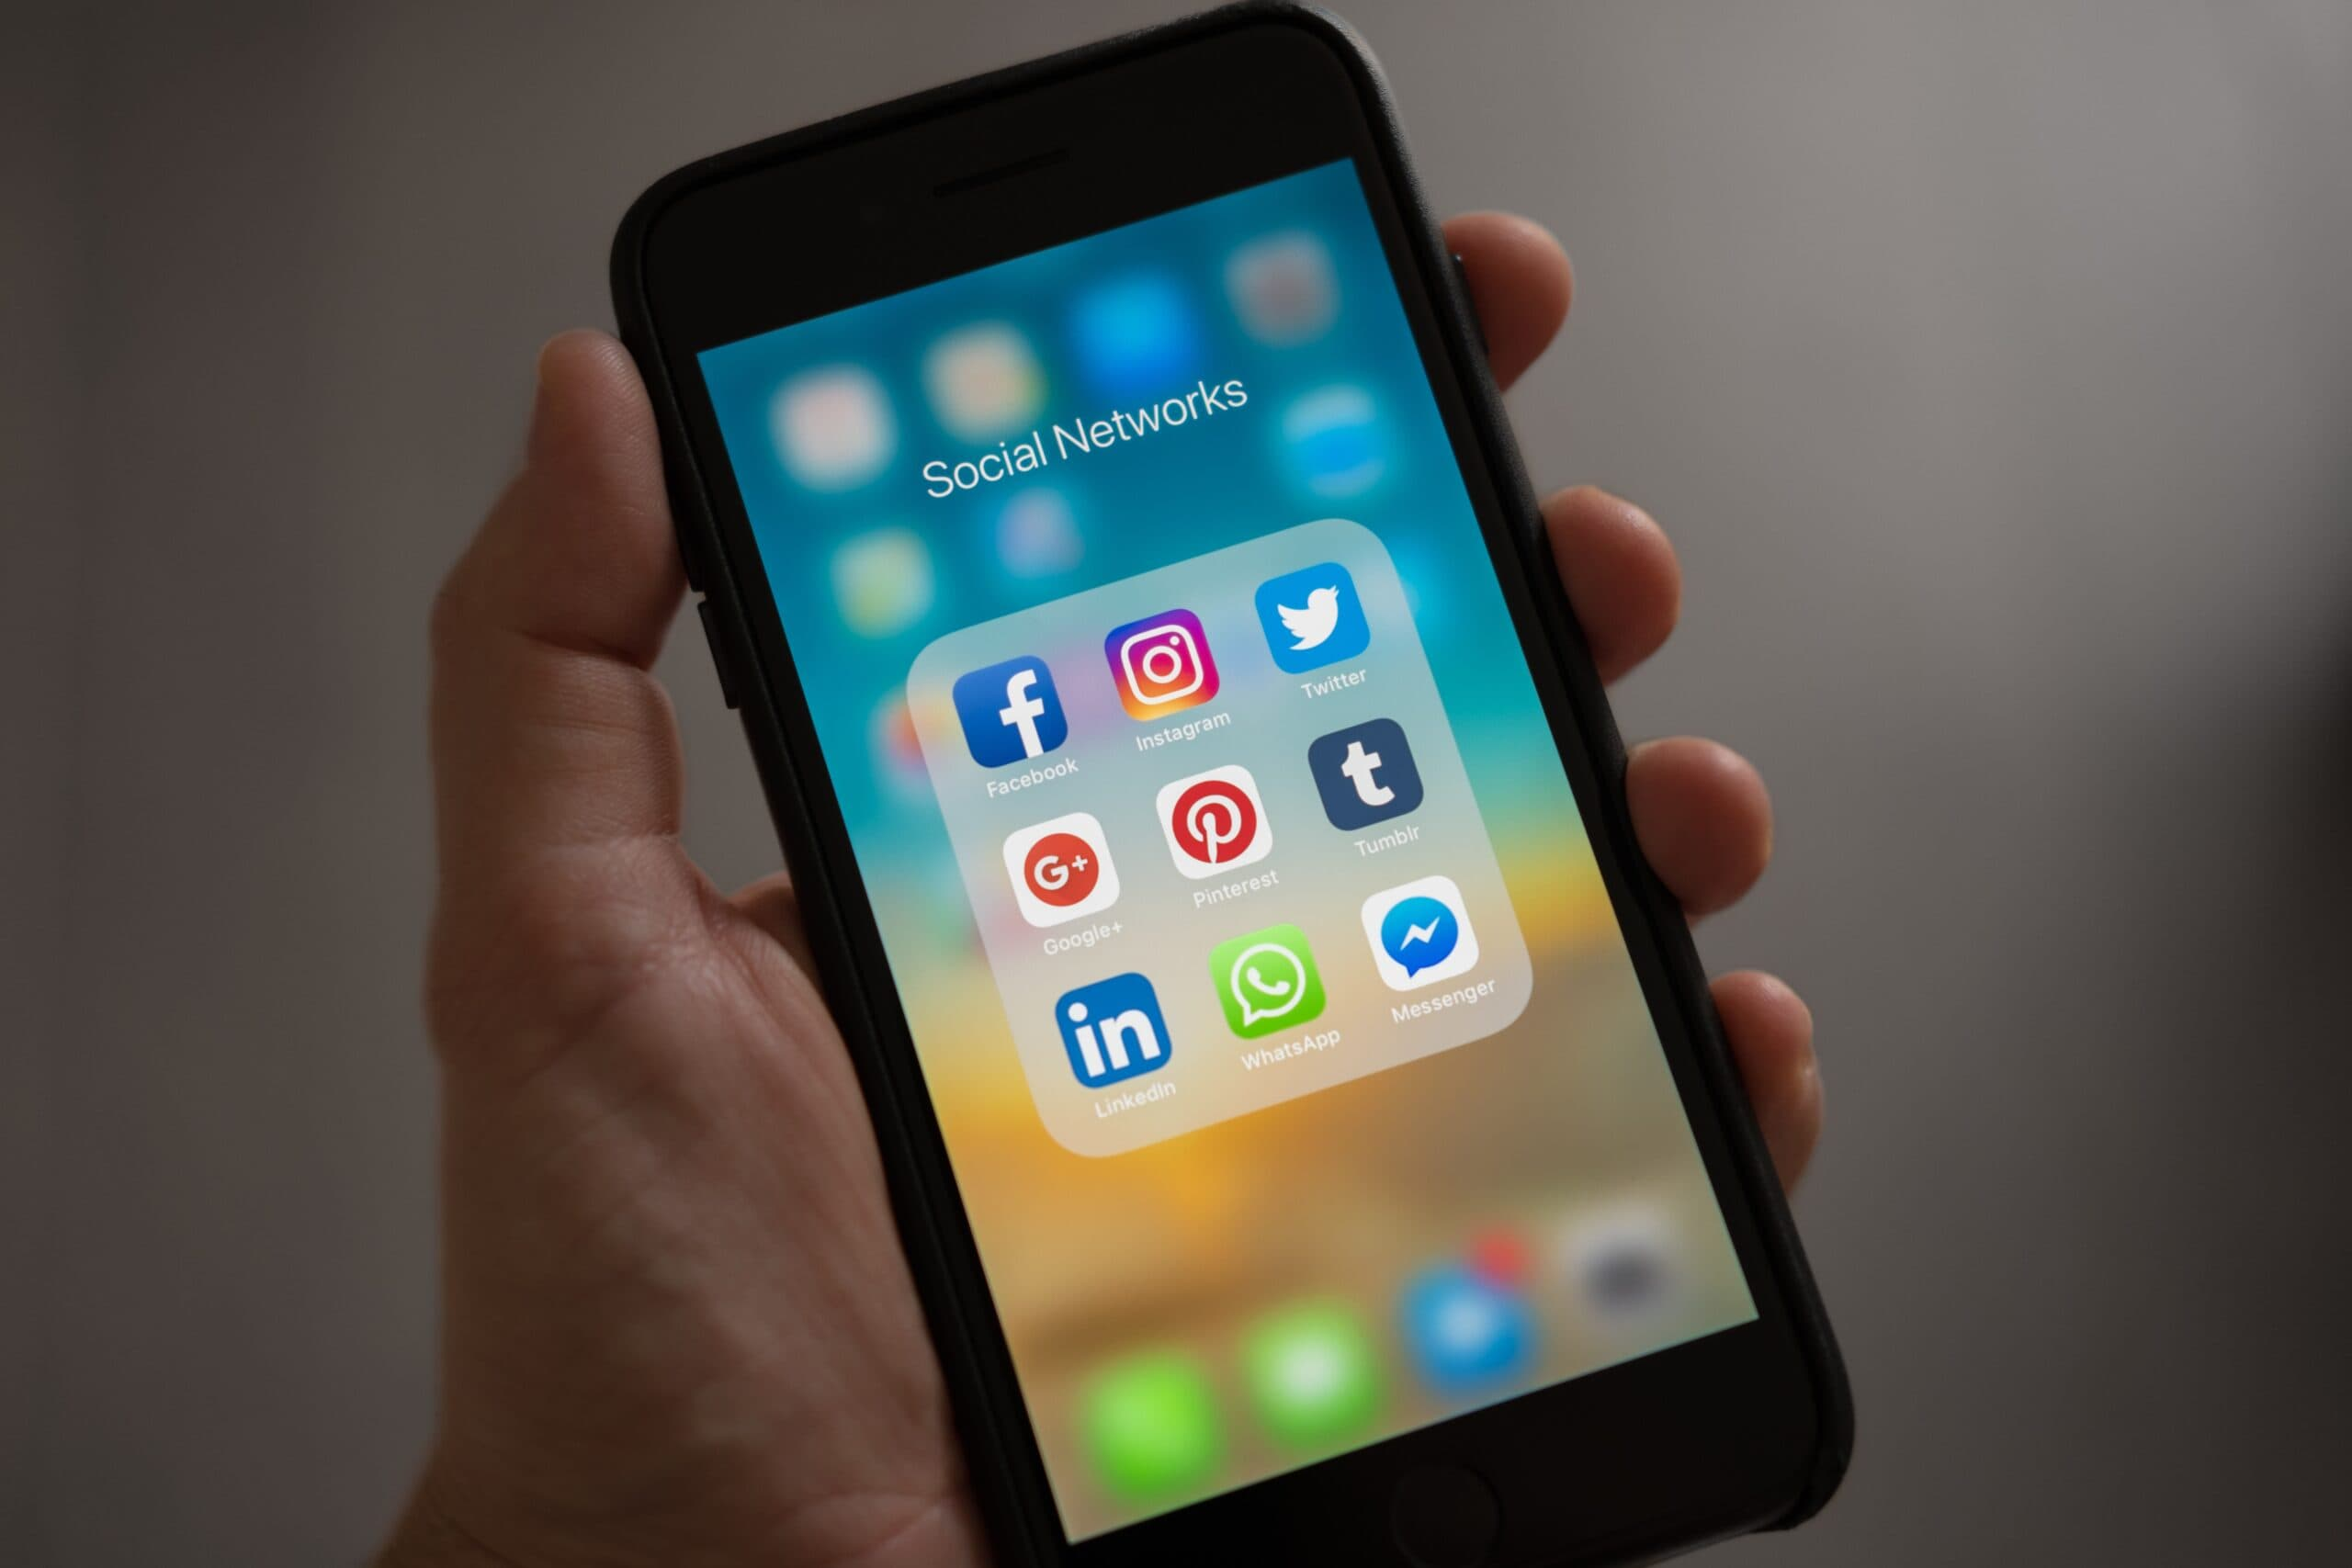 Smartphone showing social media app icons